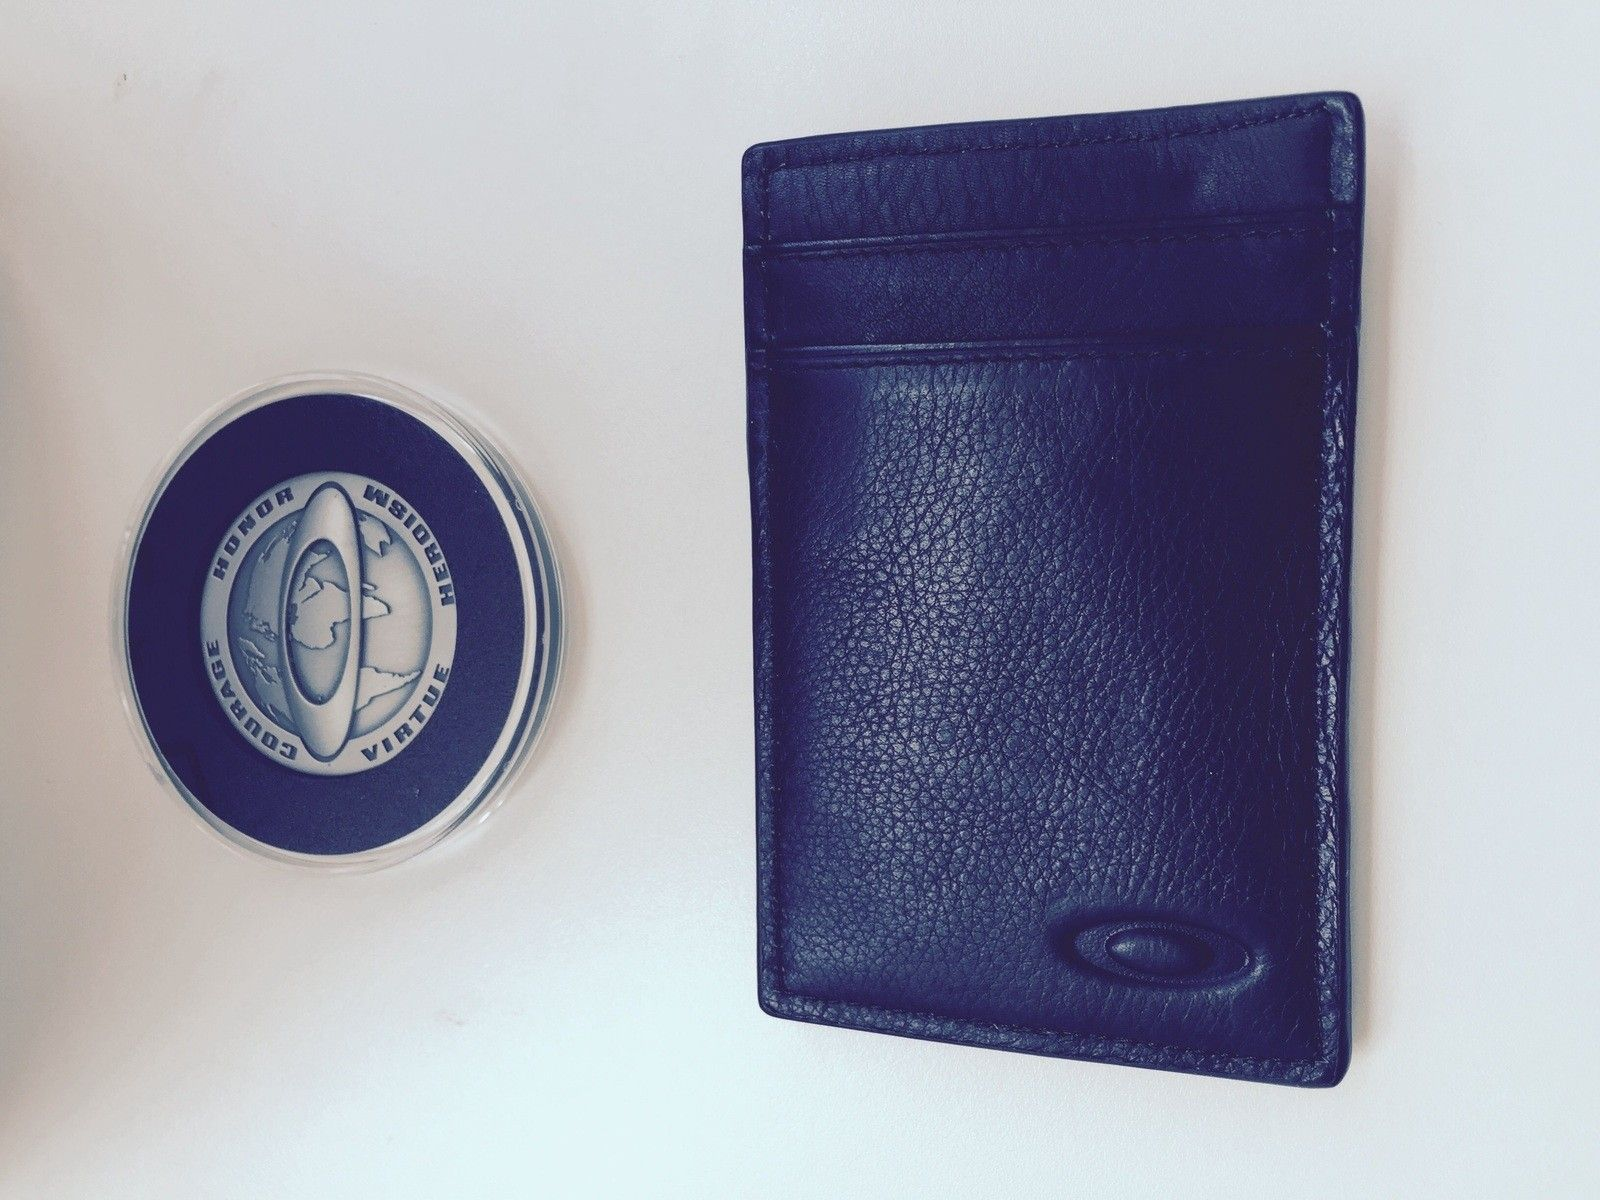 IH coin, money clip + wallet LOOKING FOR project Juliet - image.jpg